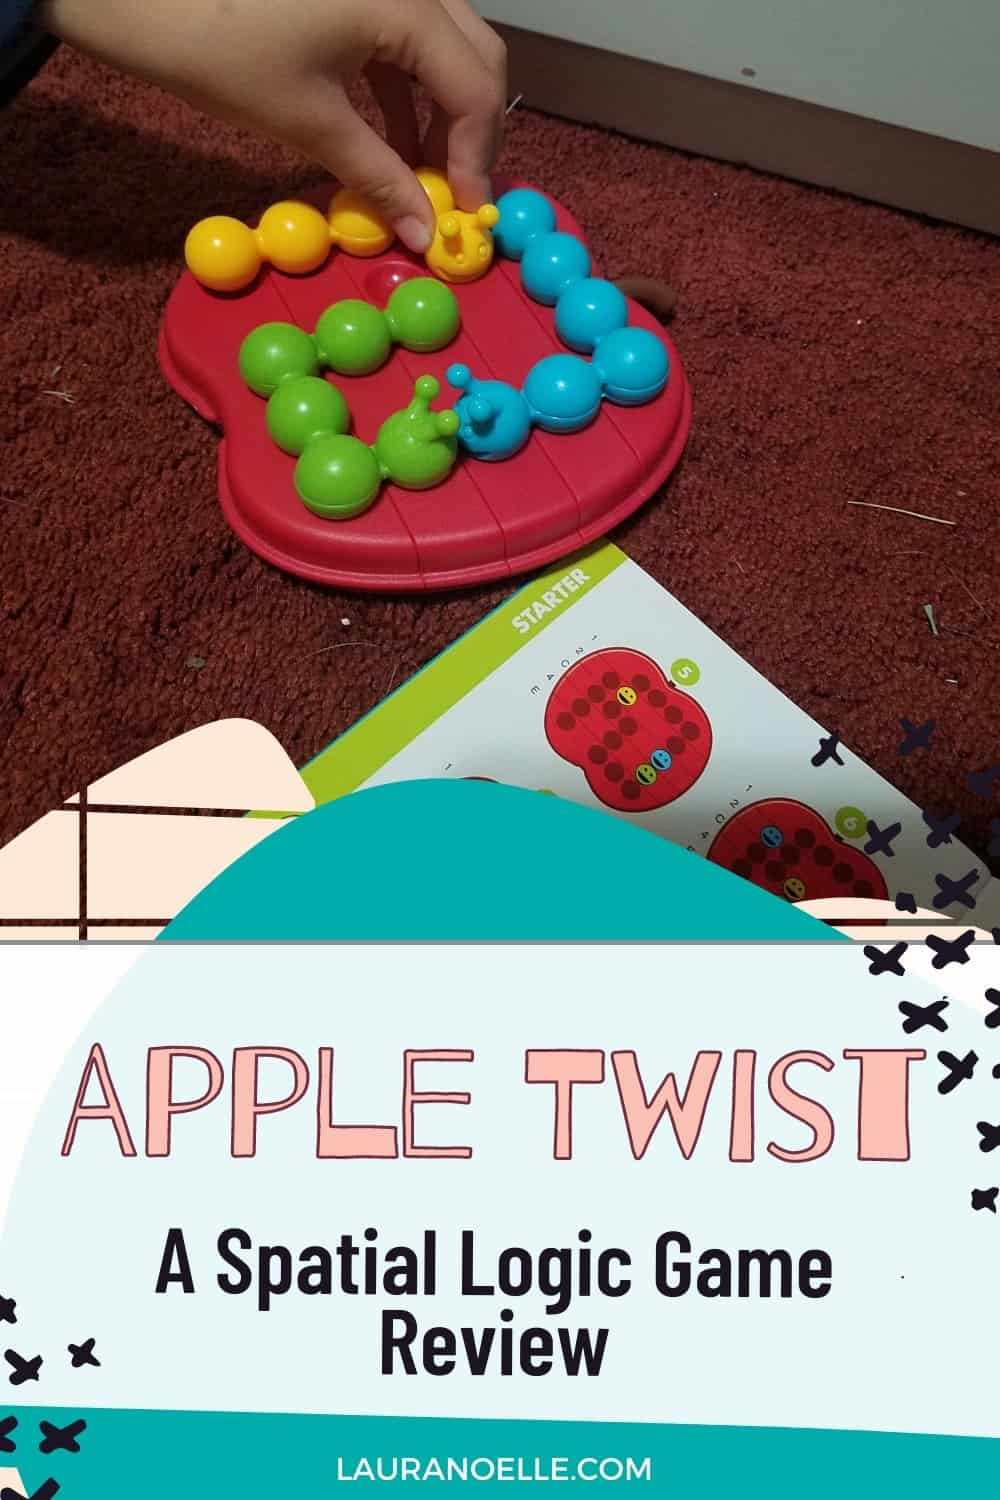 Children love thinking skills puzzles and Apple Twist is no different! Here's what we thought of this hands-on game board.